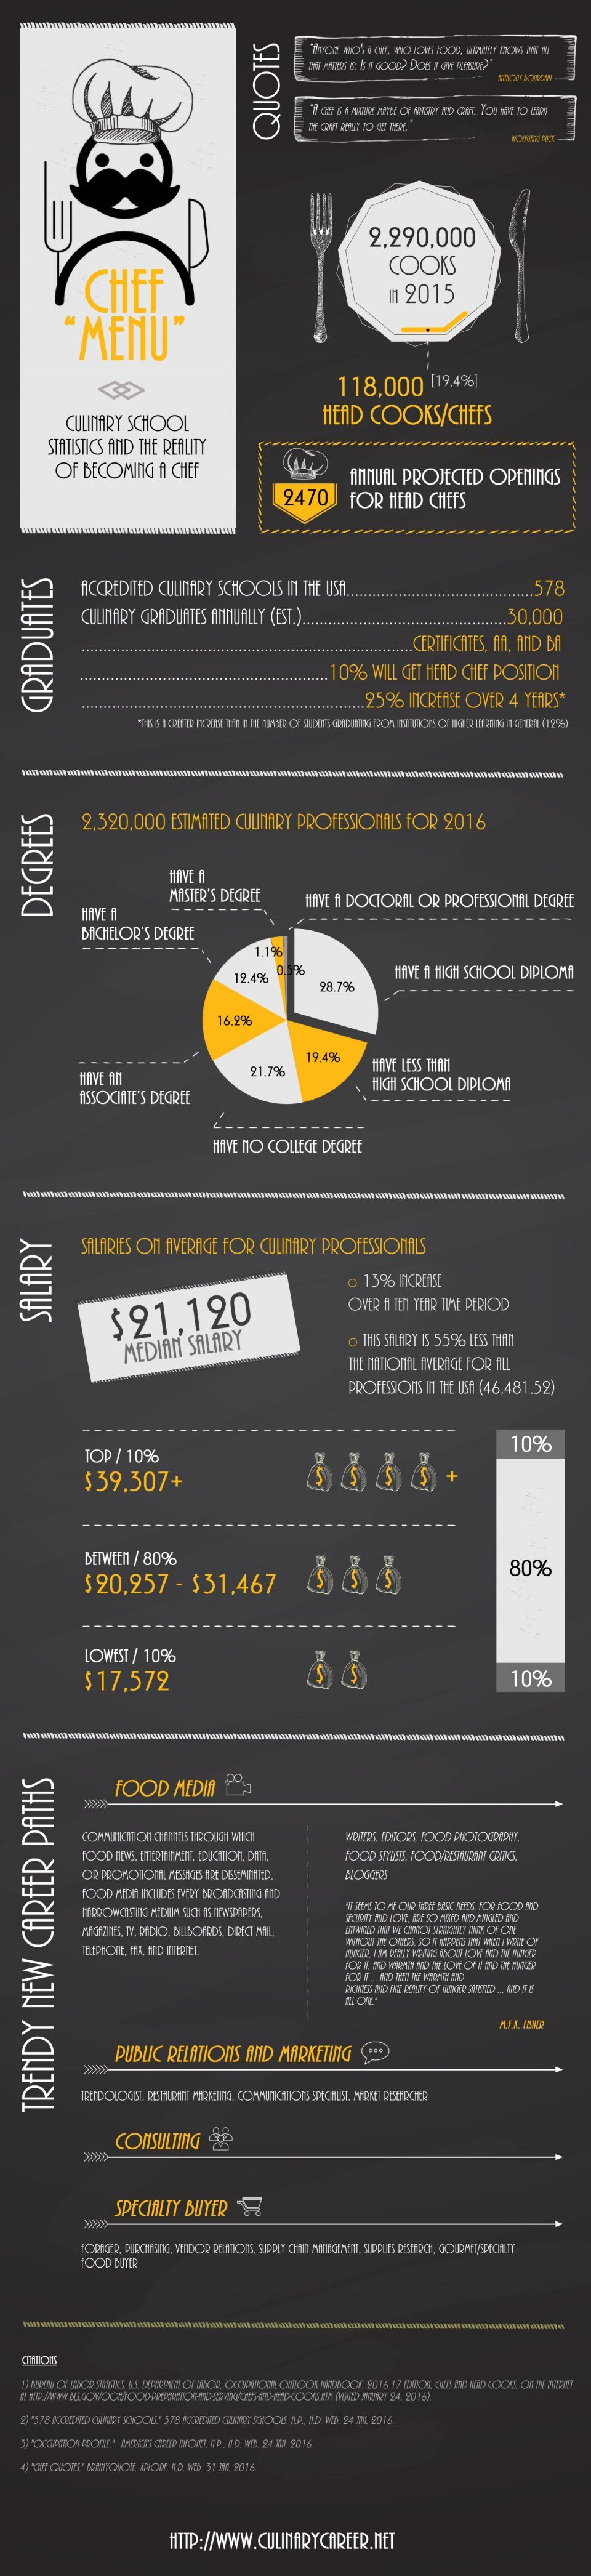 Culinary School Statistics and the Realities of Becoming a Chef Infographic